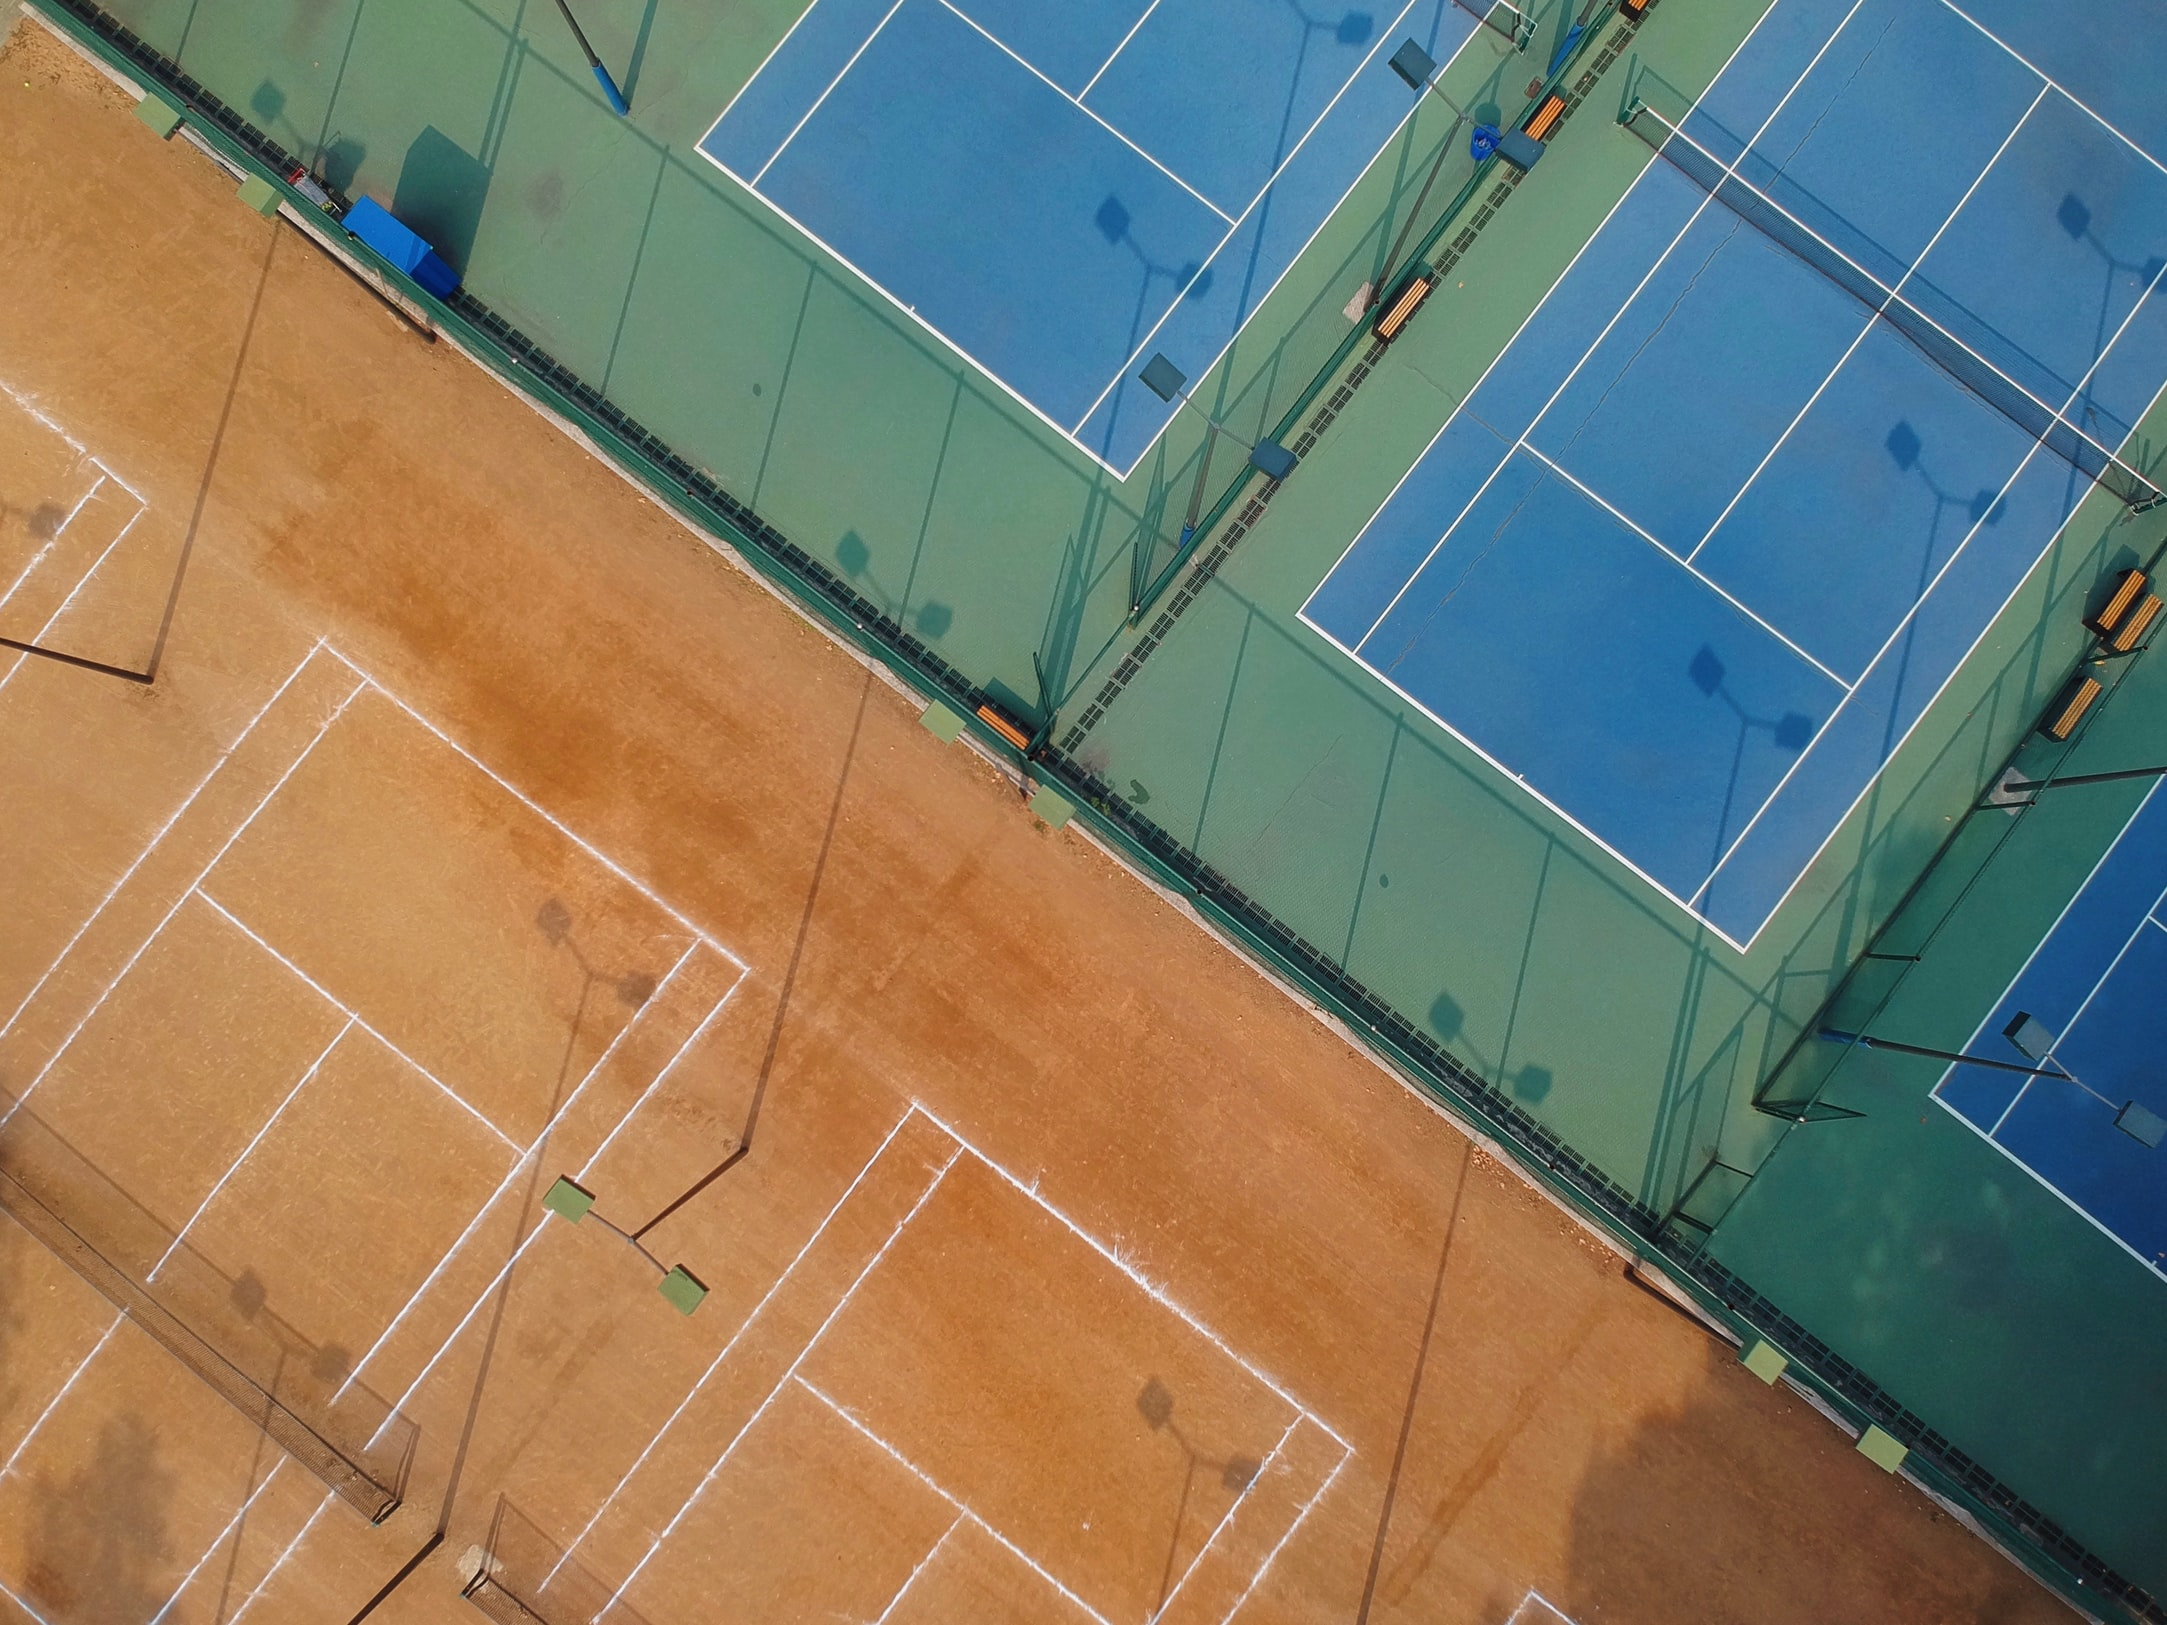 Two different type of tennis courts